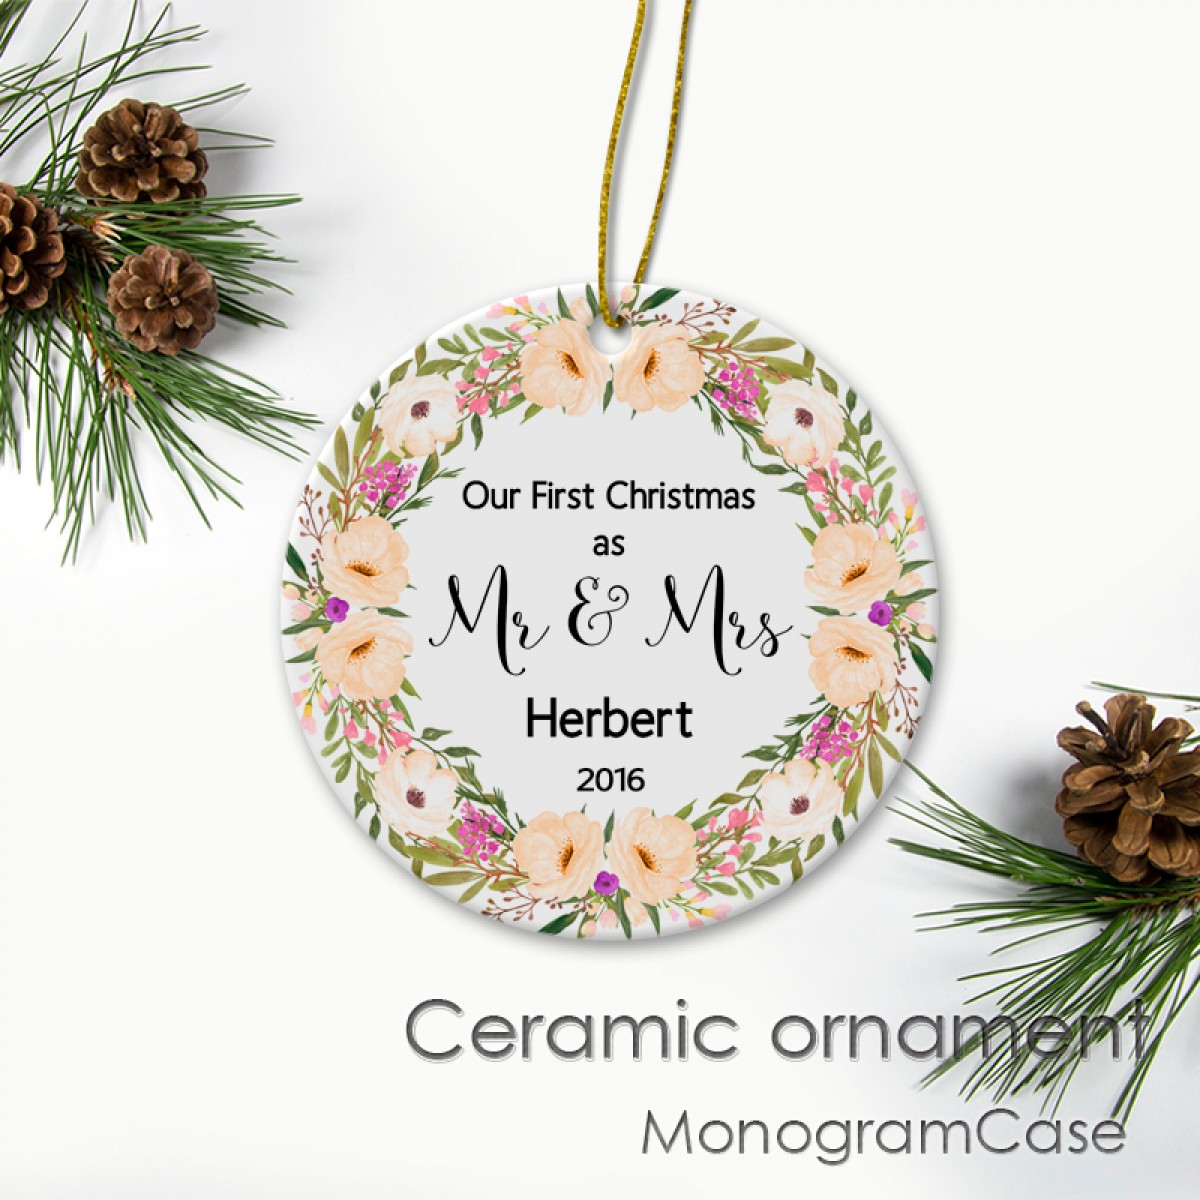 Christmas Ornaments Personalized.Personalized Ceramic Christmas Ornaments With Beautiful Flowers Wreath